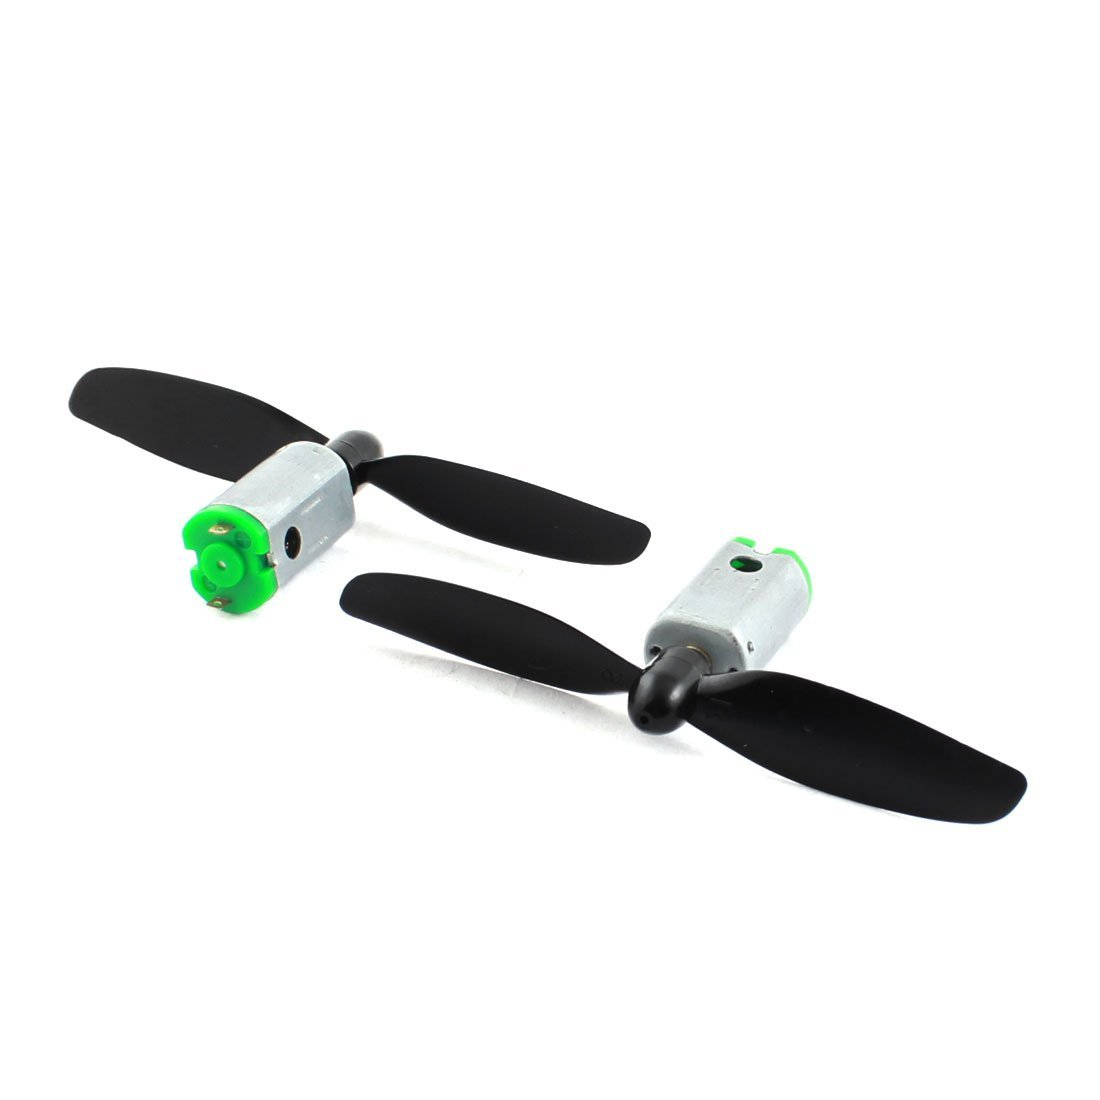 Friction fit DC motor propellers